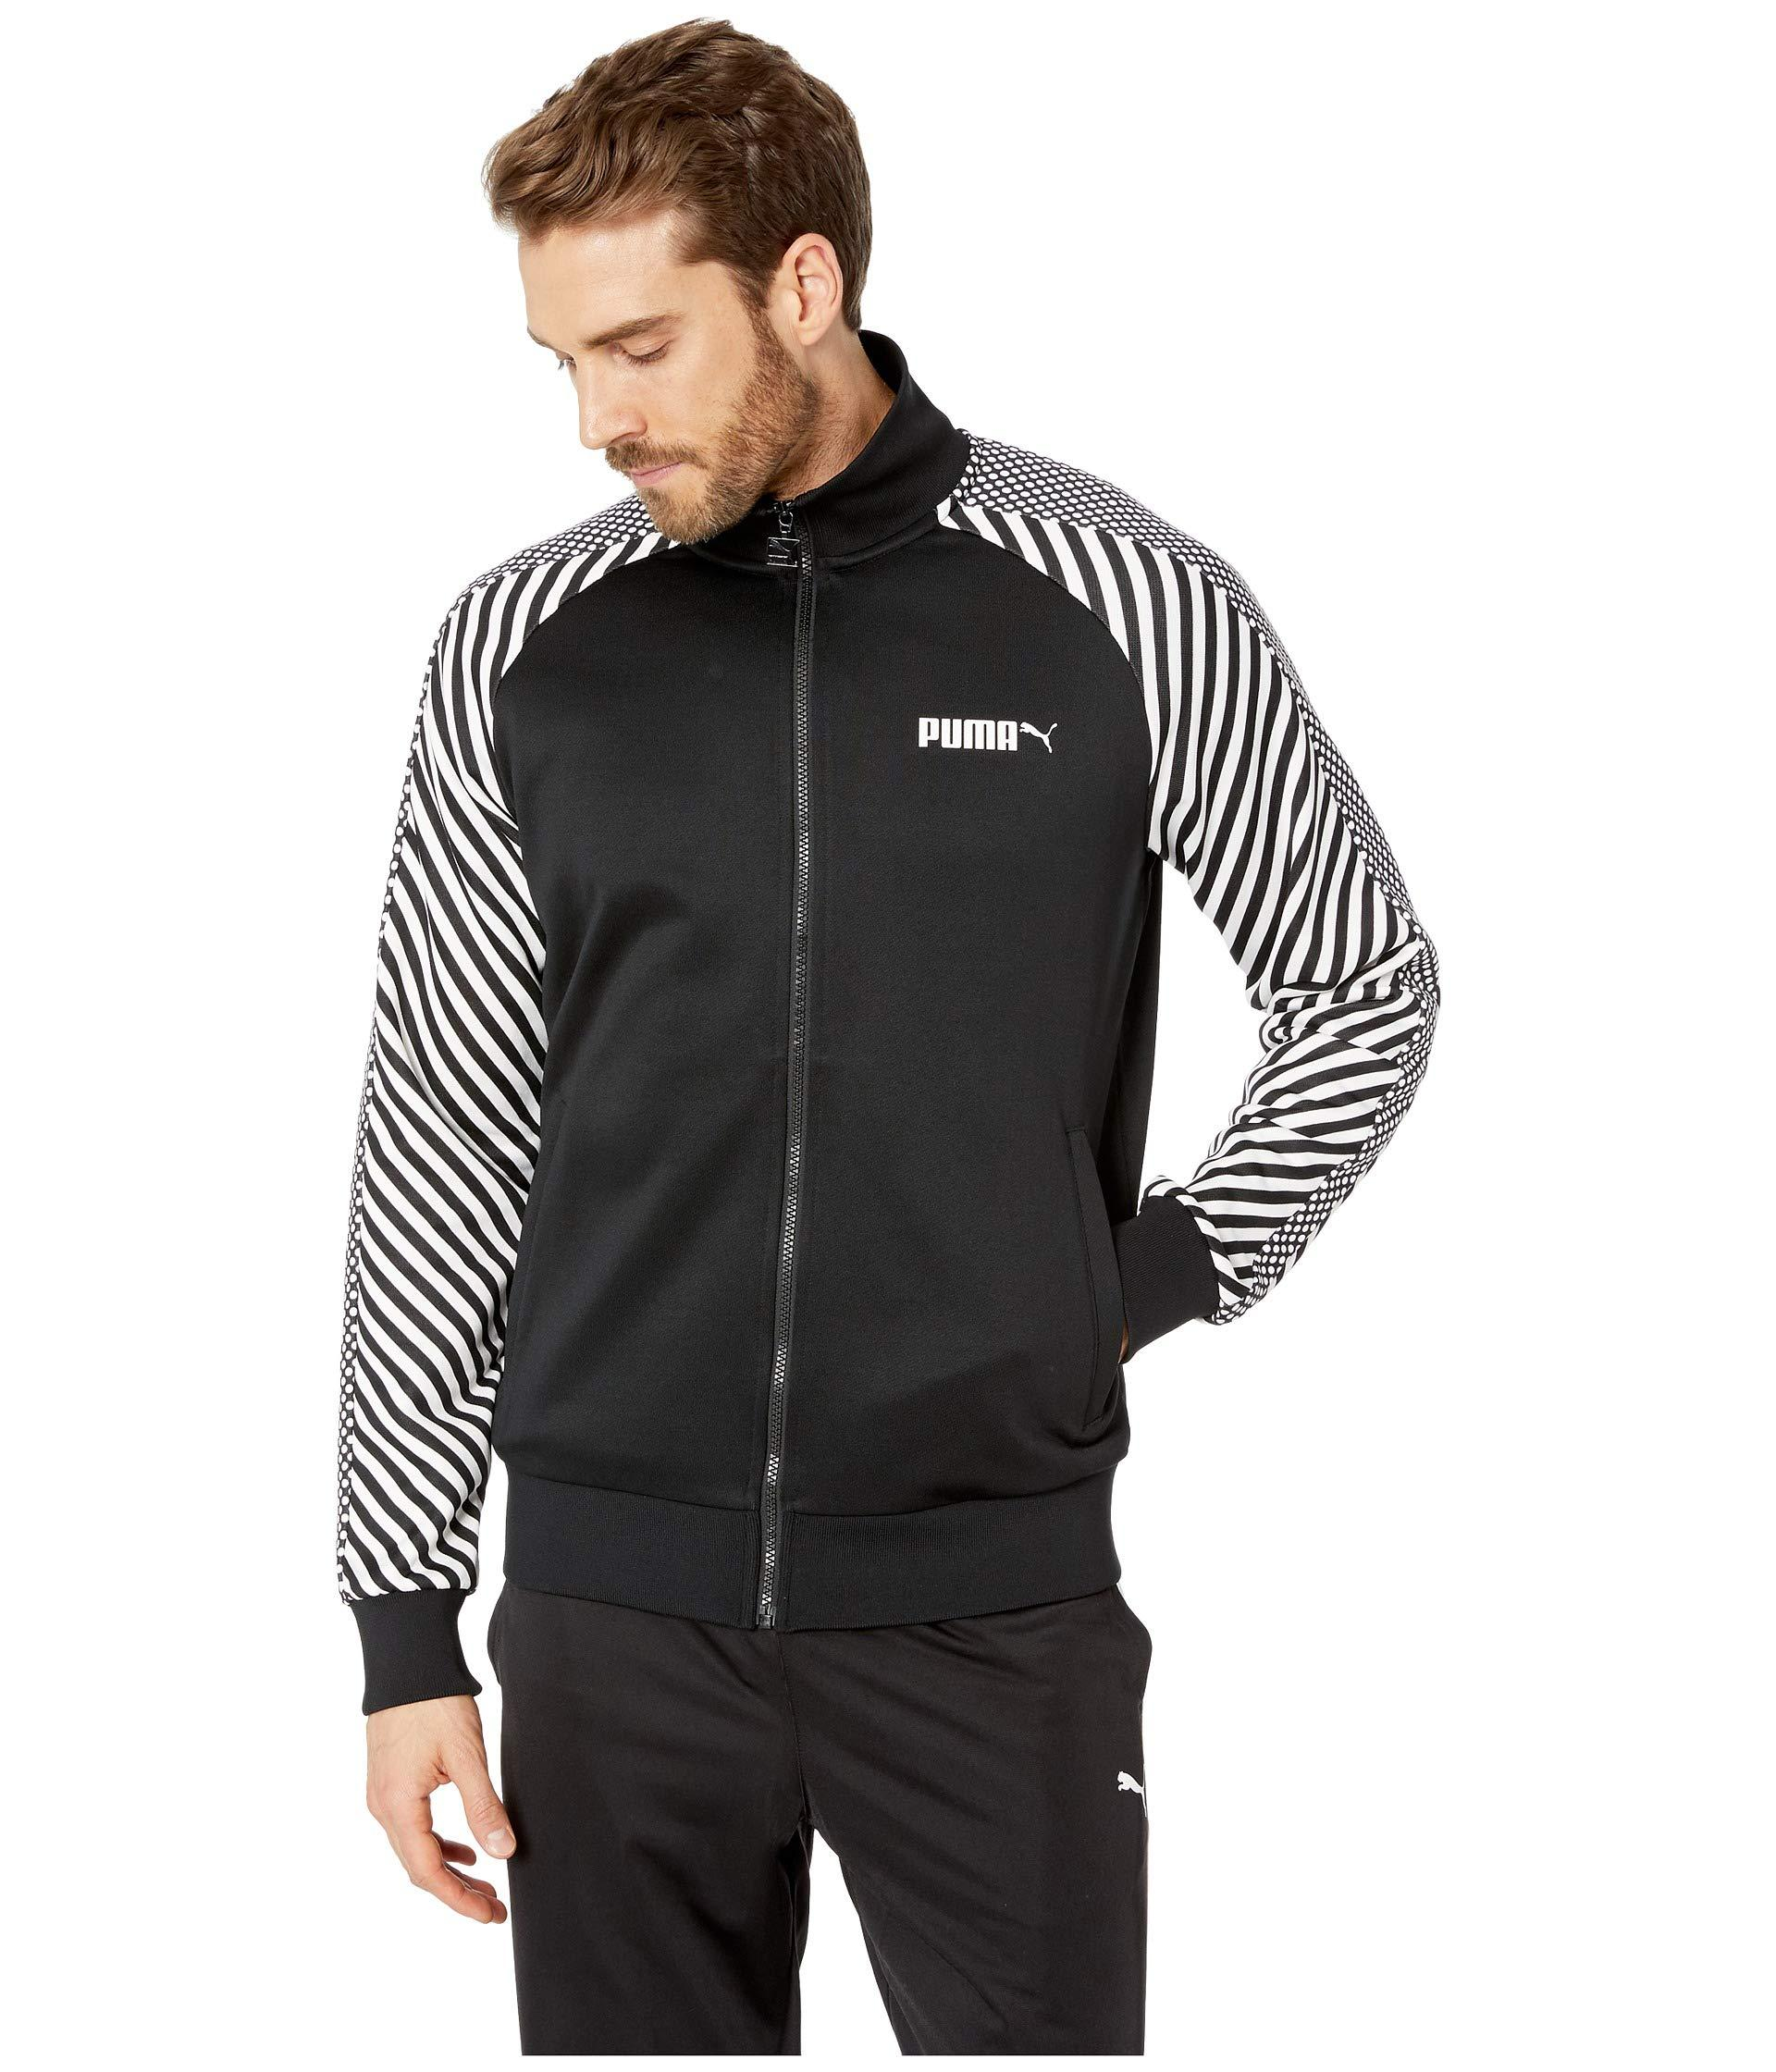 8c1cf4df888c Lyst - PUMA T7 Pop Track Jacket in Black for Men - Save 39%